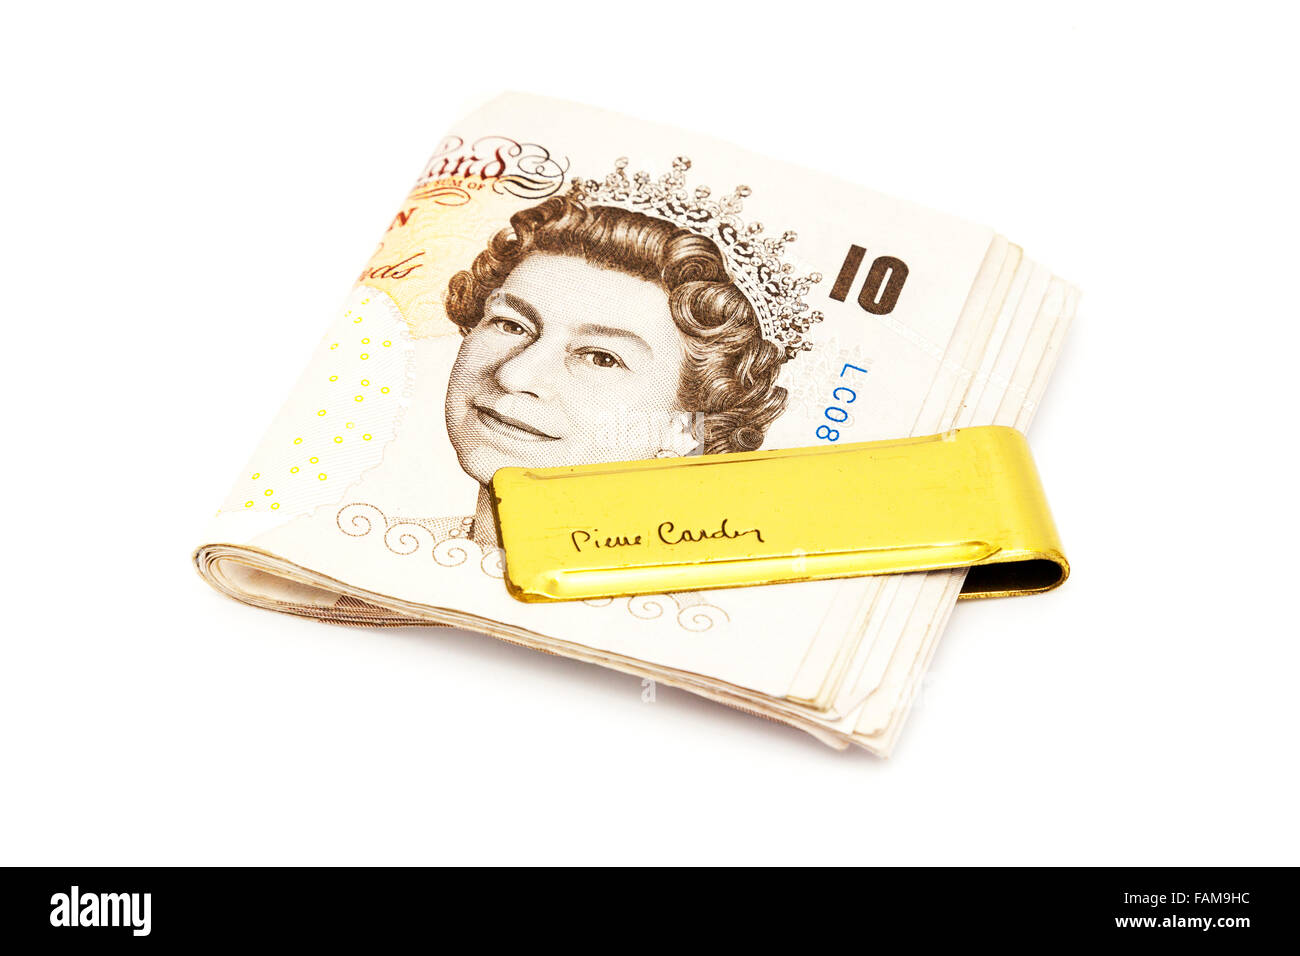 Money clip cash currency gold Pierre Cardin UK ten pounds holder Cutout cut out white background isolated copy space - Stock Image